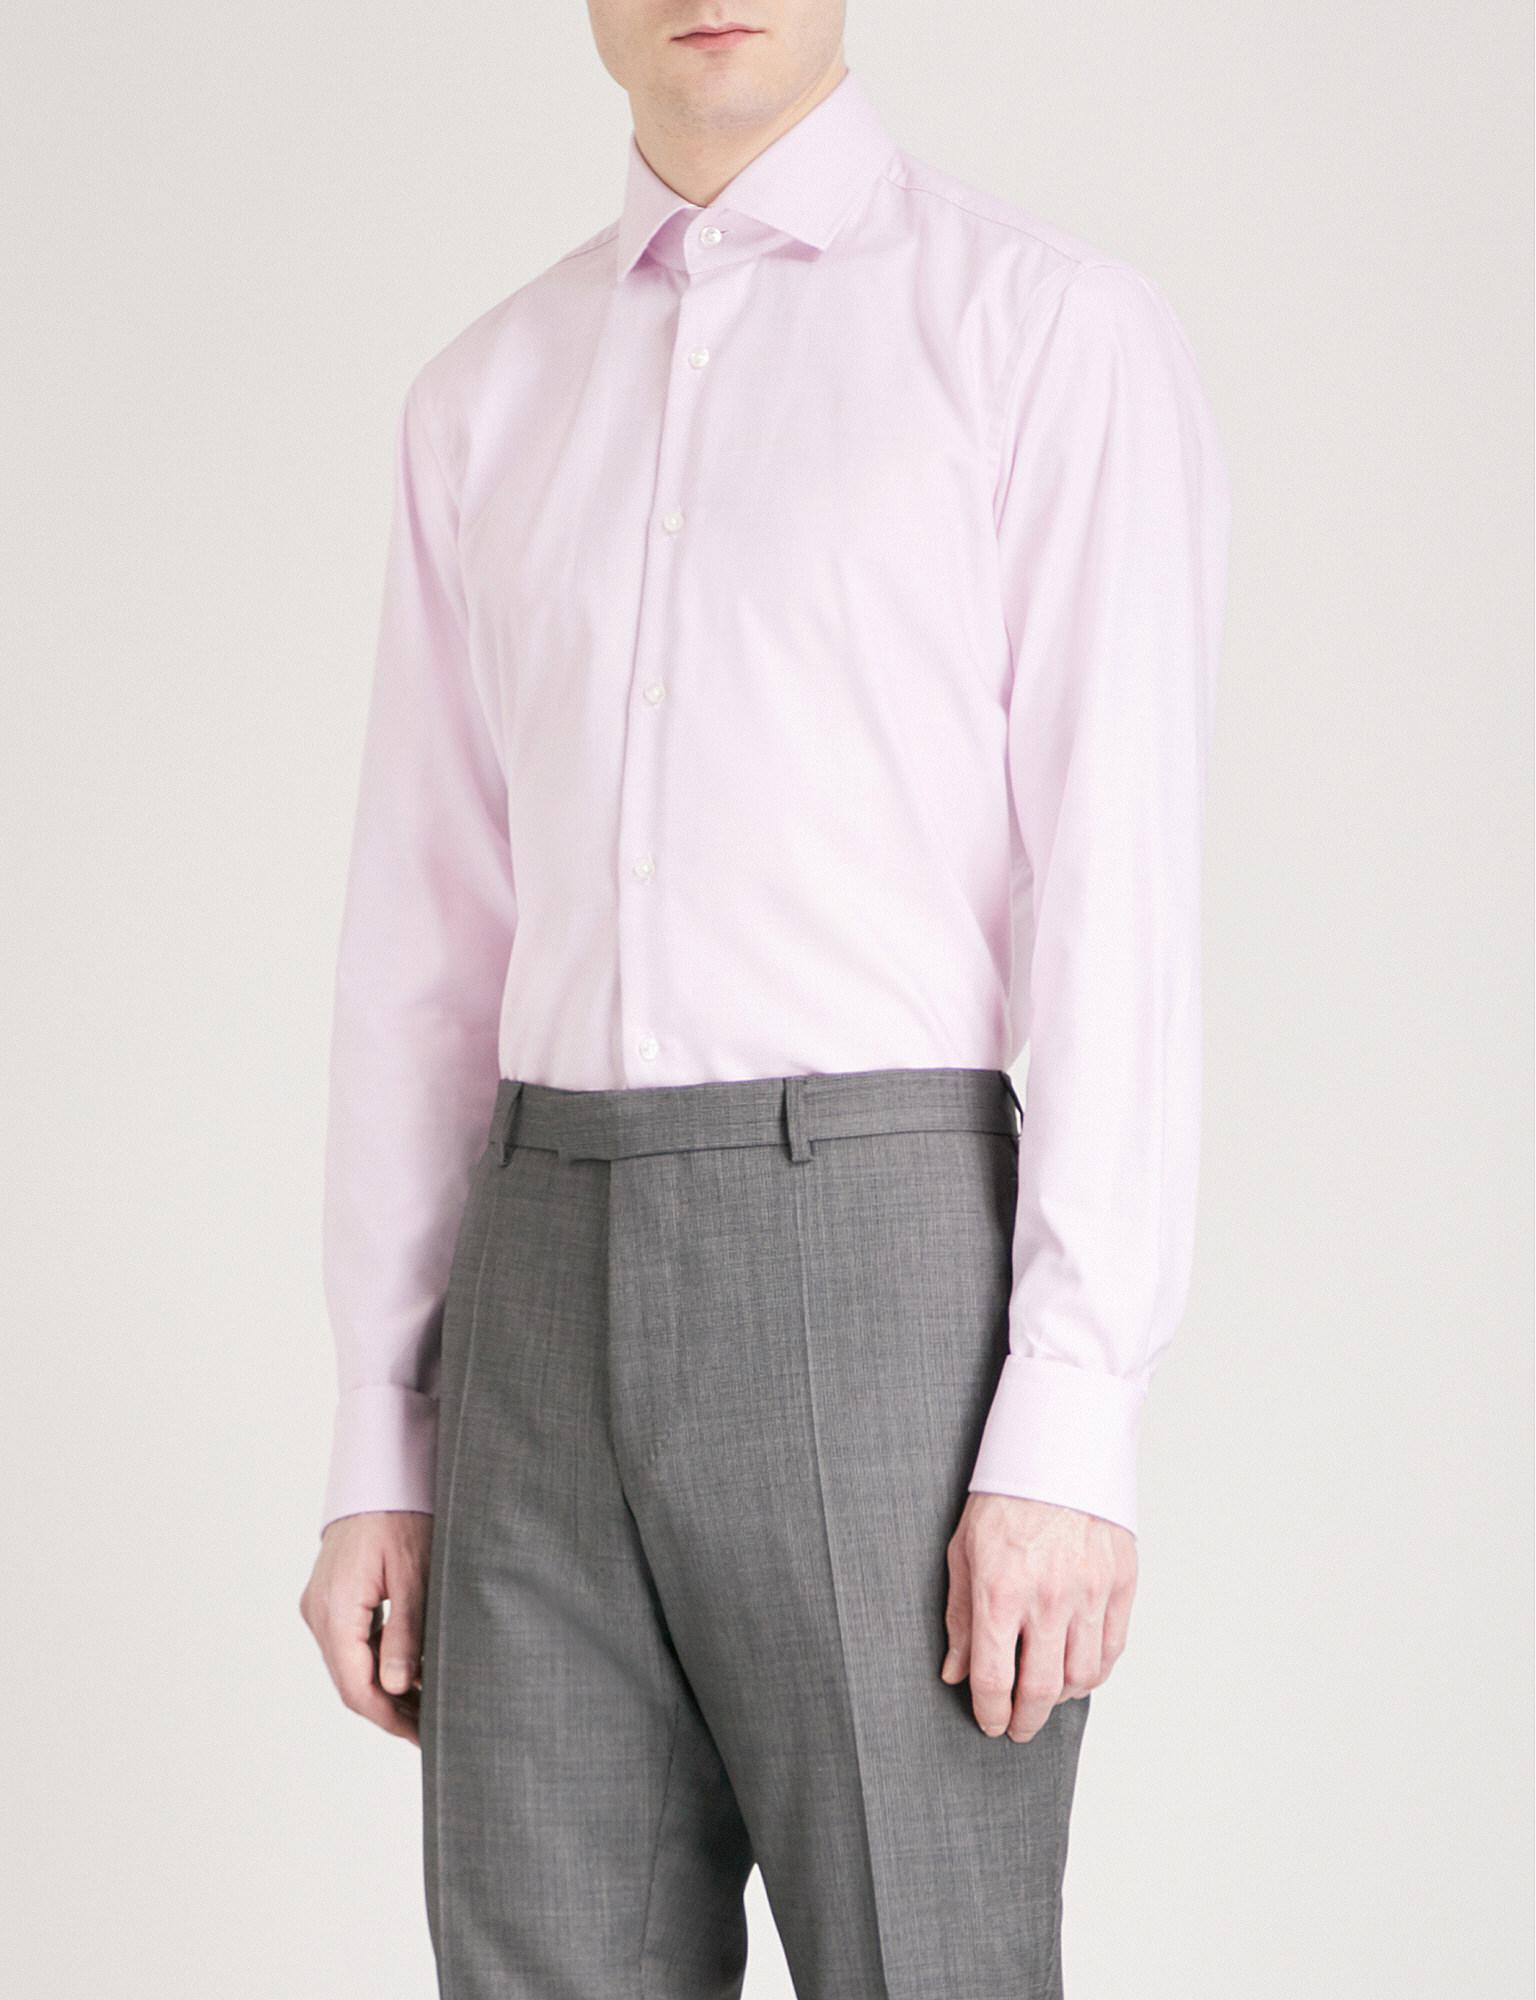 16594c2a6 BOSS Micro-check Pattern Regular-fit Cotton Shirt in Pink for Men - Lyst